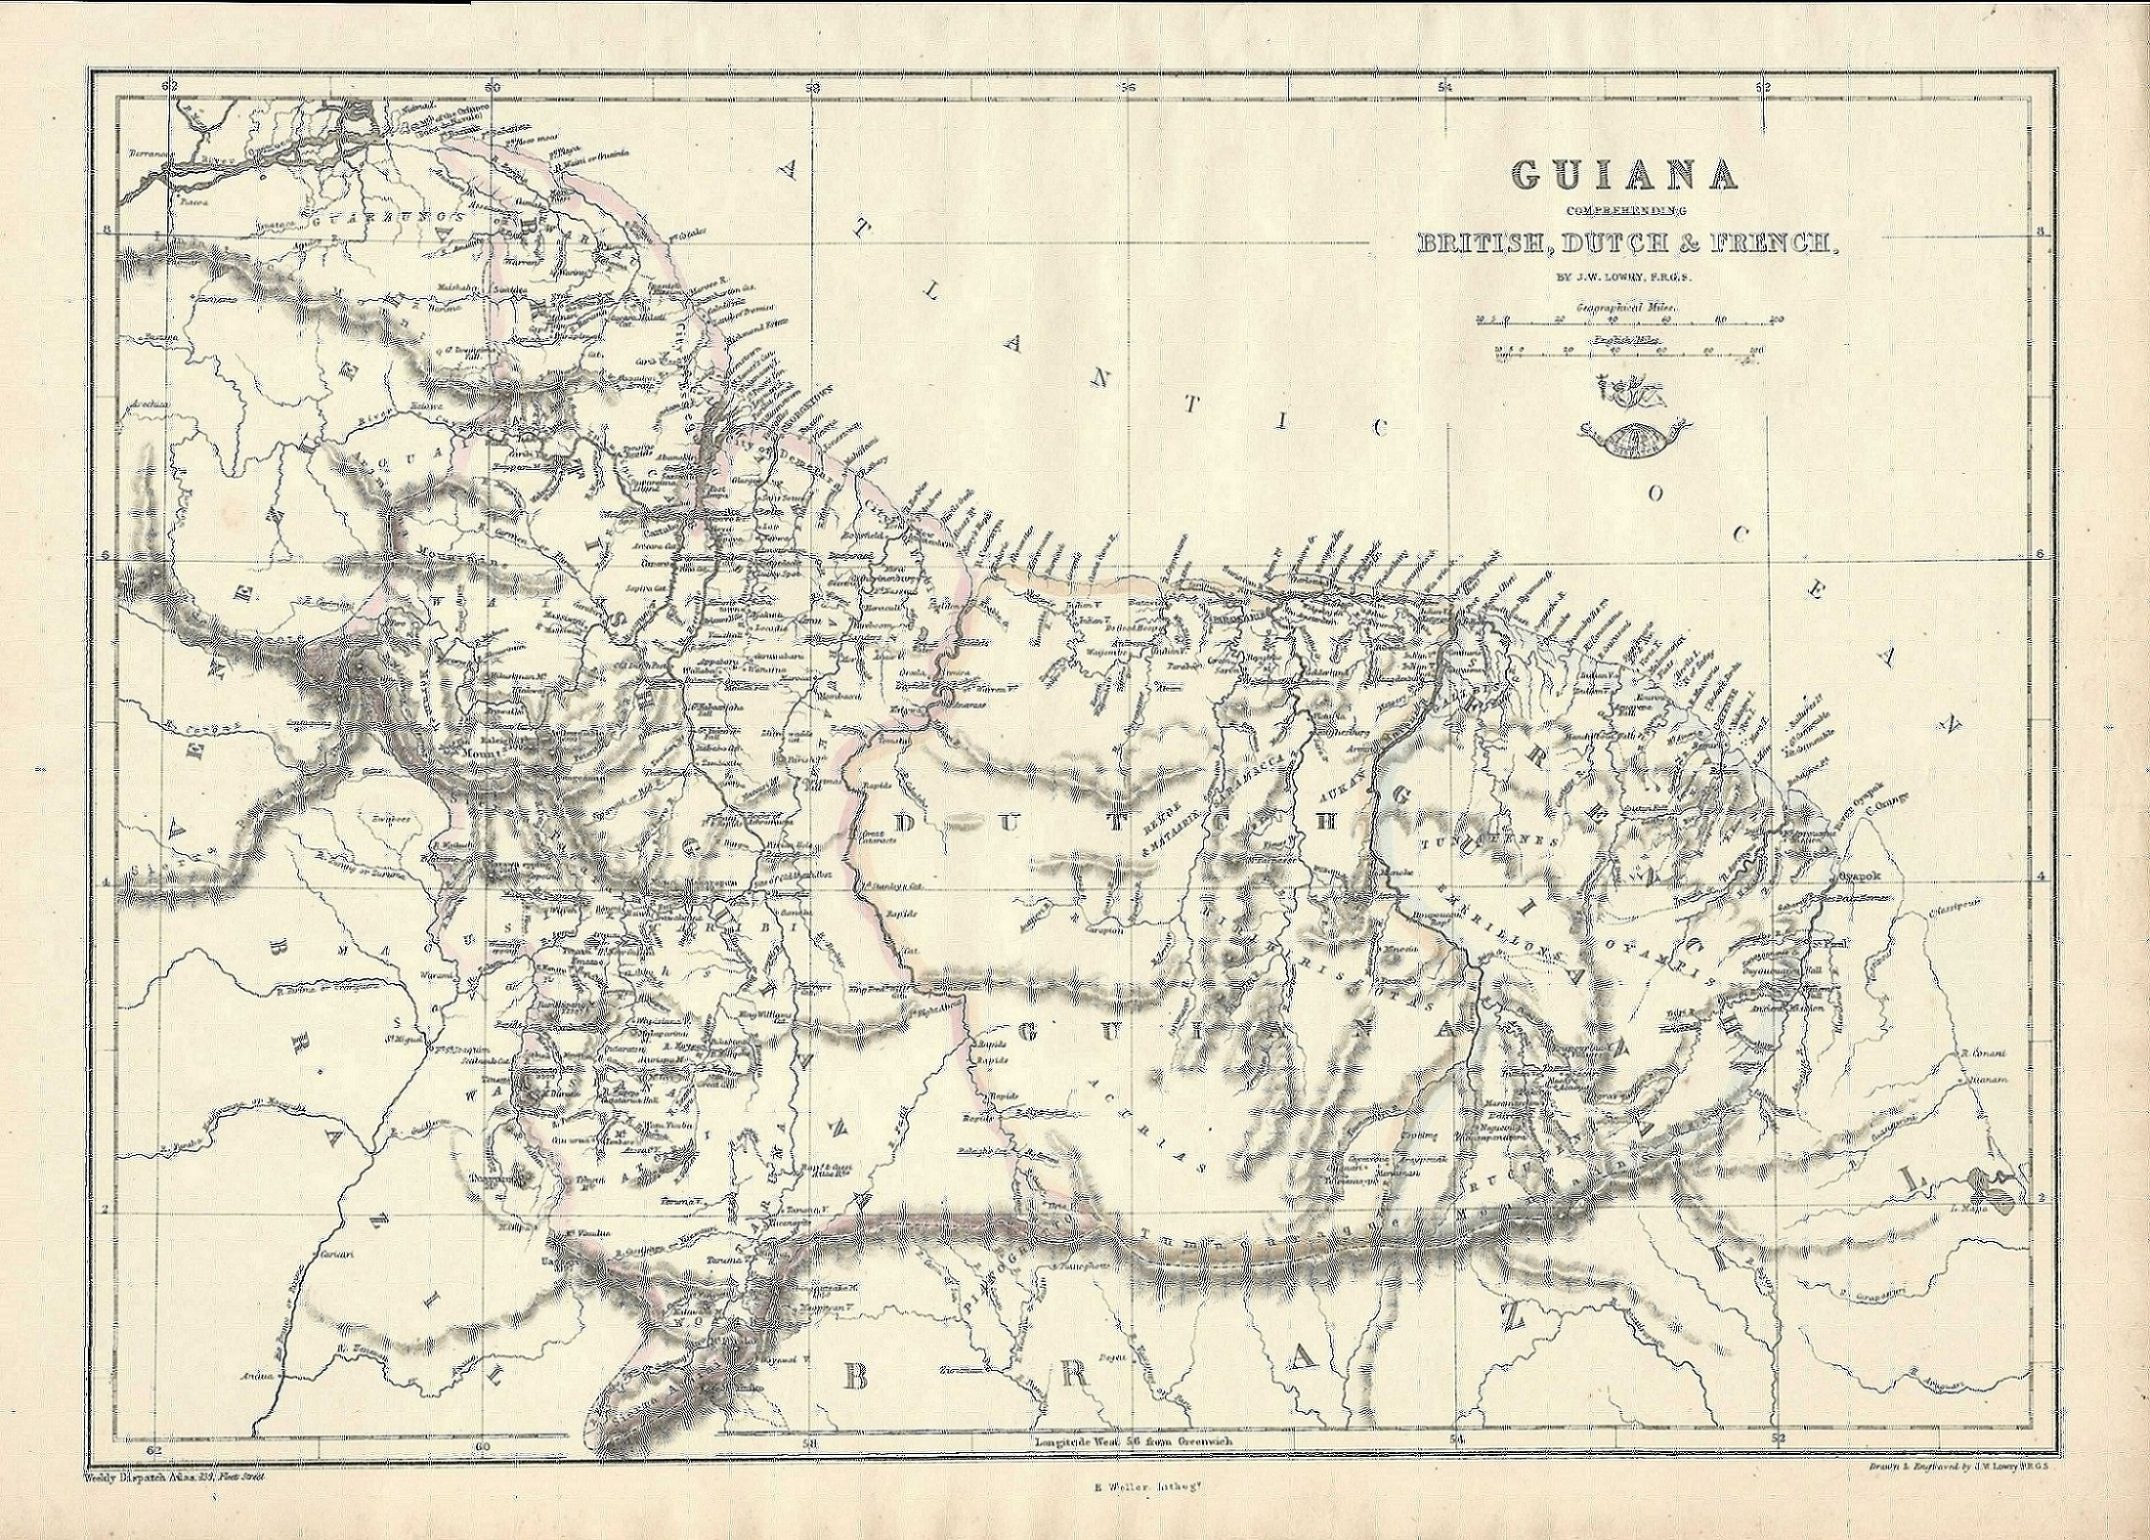 Guyana antique map Weekly Dispatch Atlas 1863 on